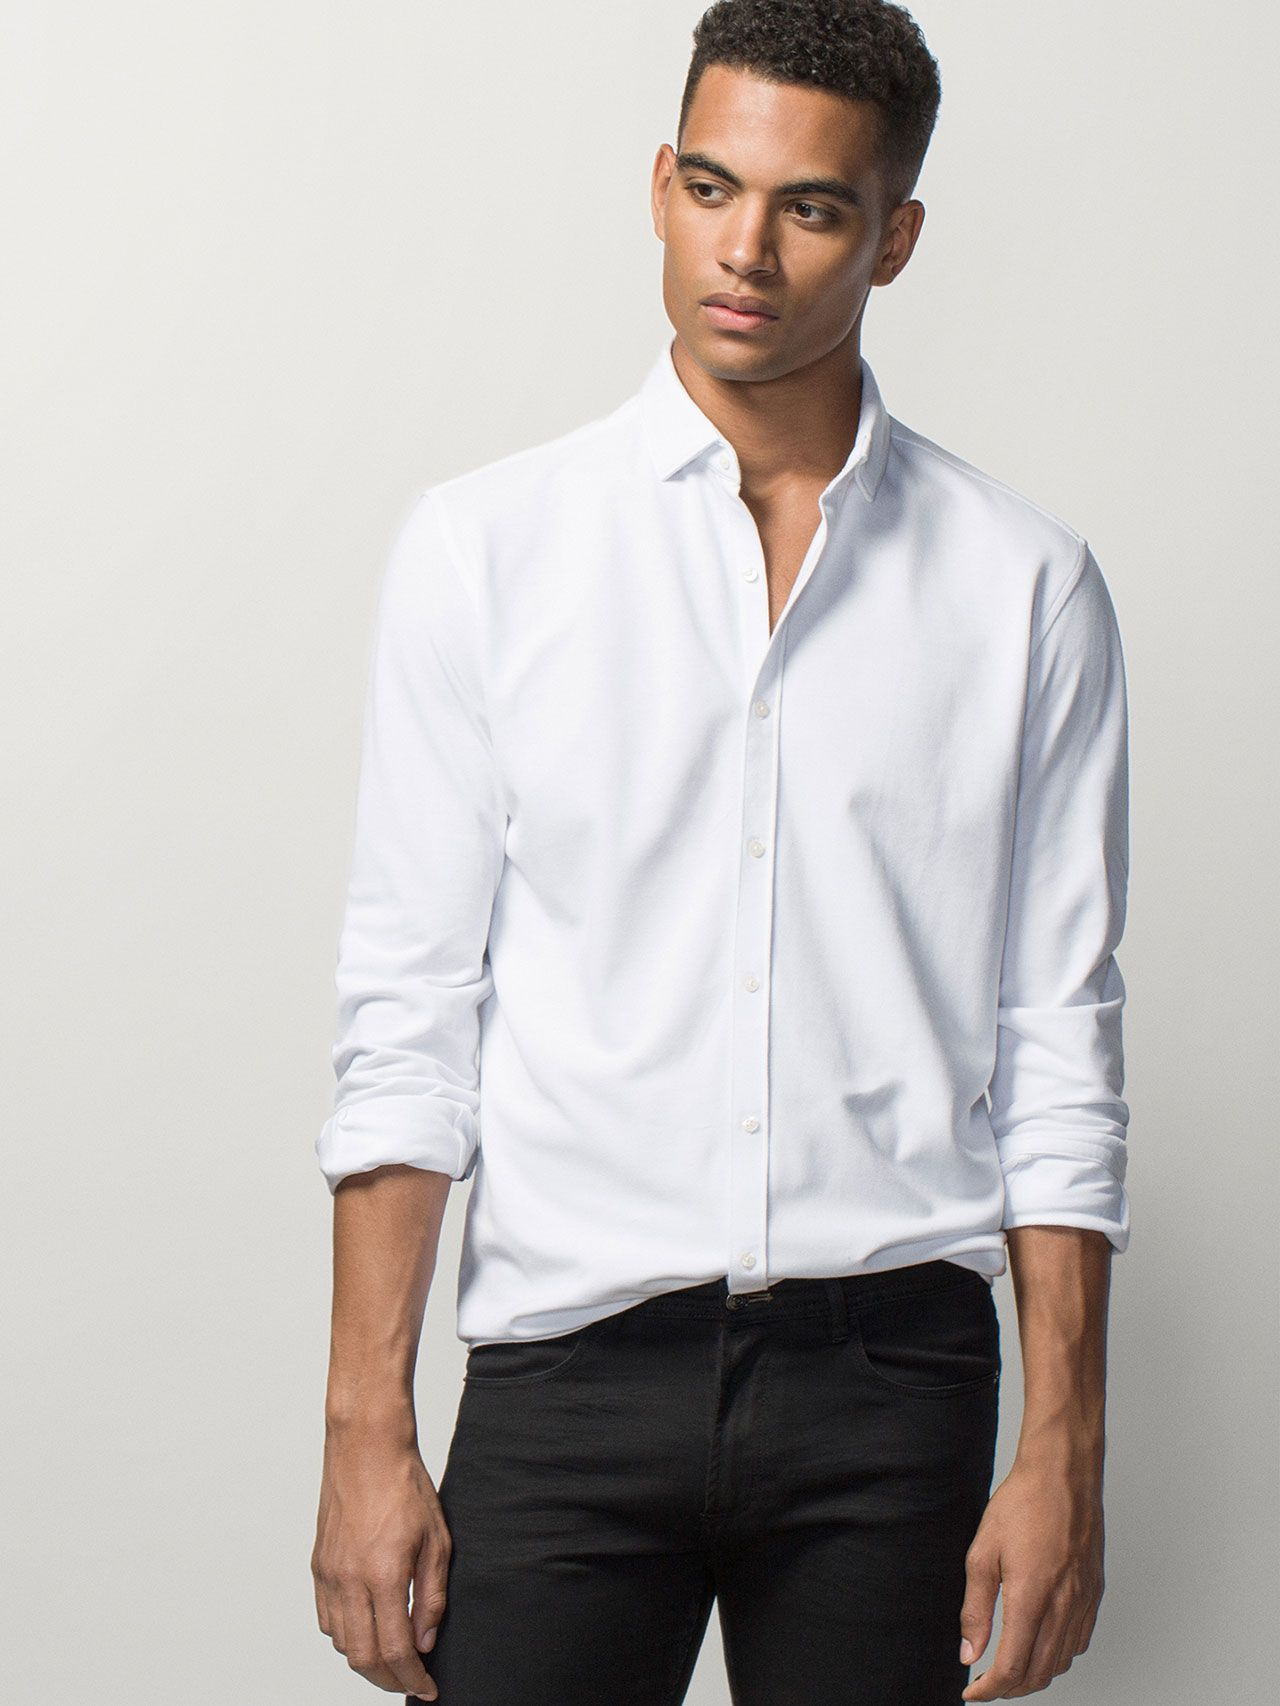 Shirt Elbow Patches White With Massimo DuttiMen´s Style LjSzMVqUpG